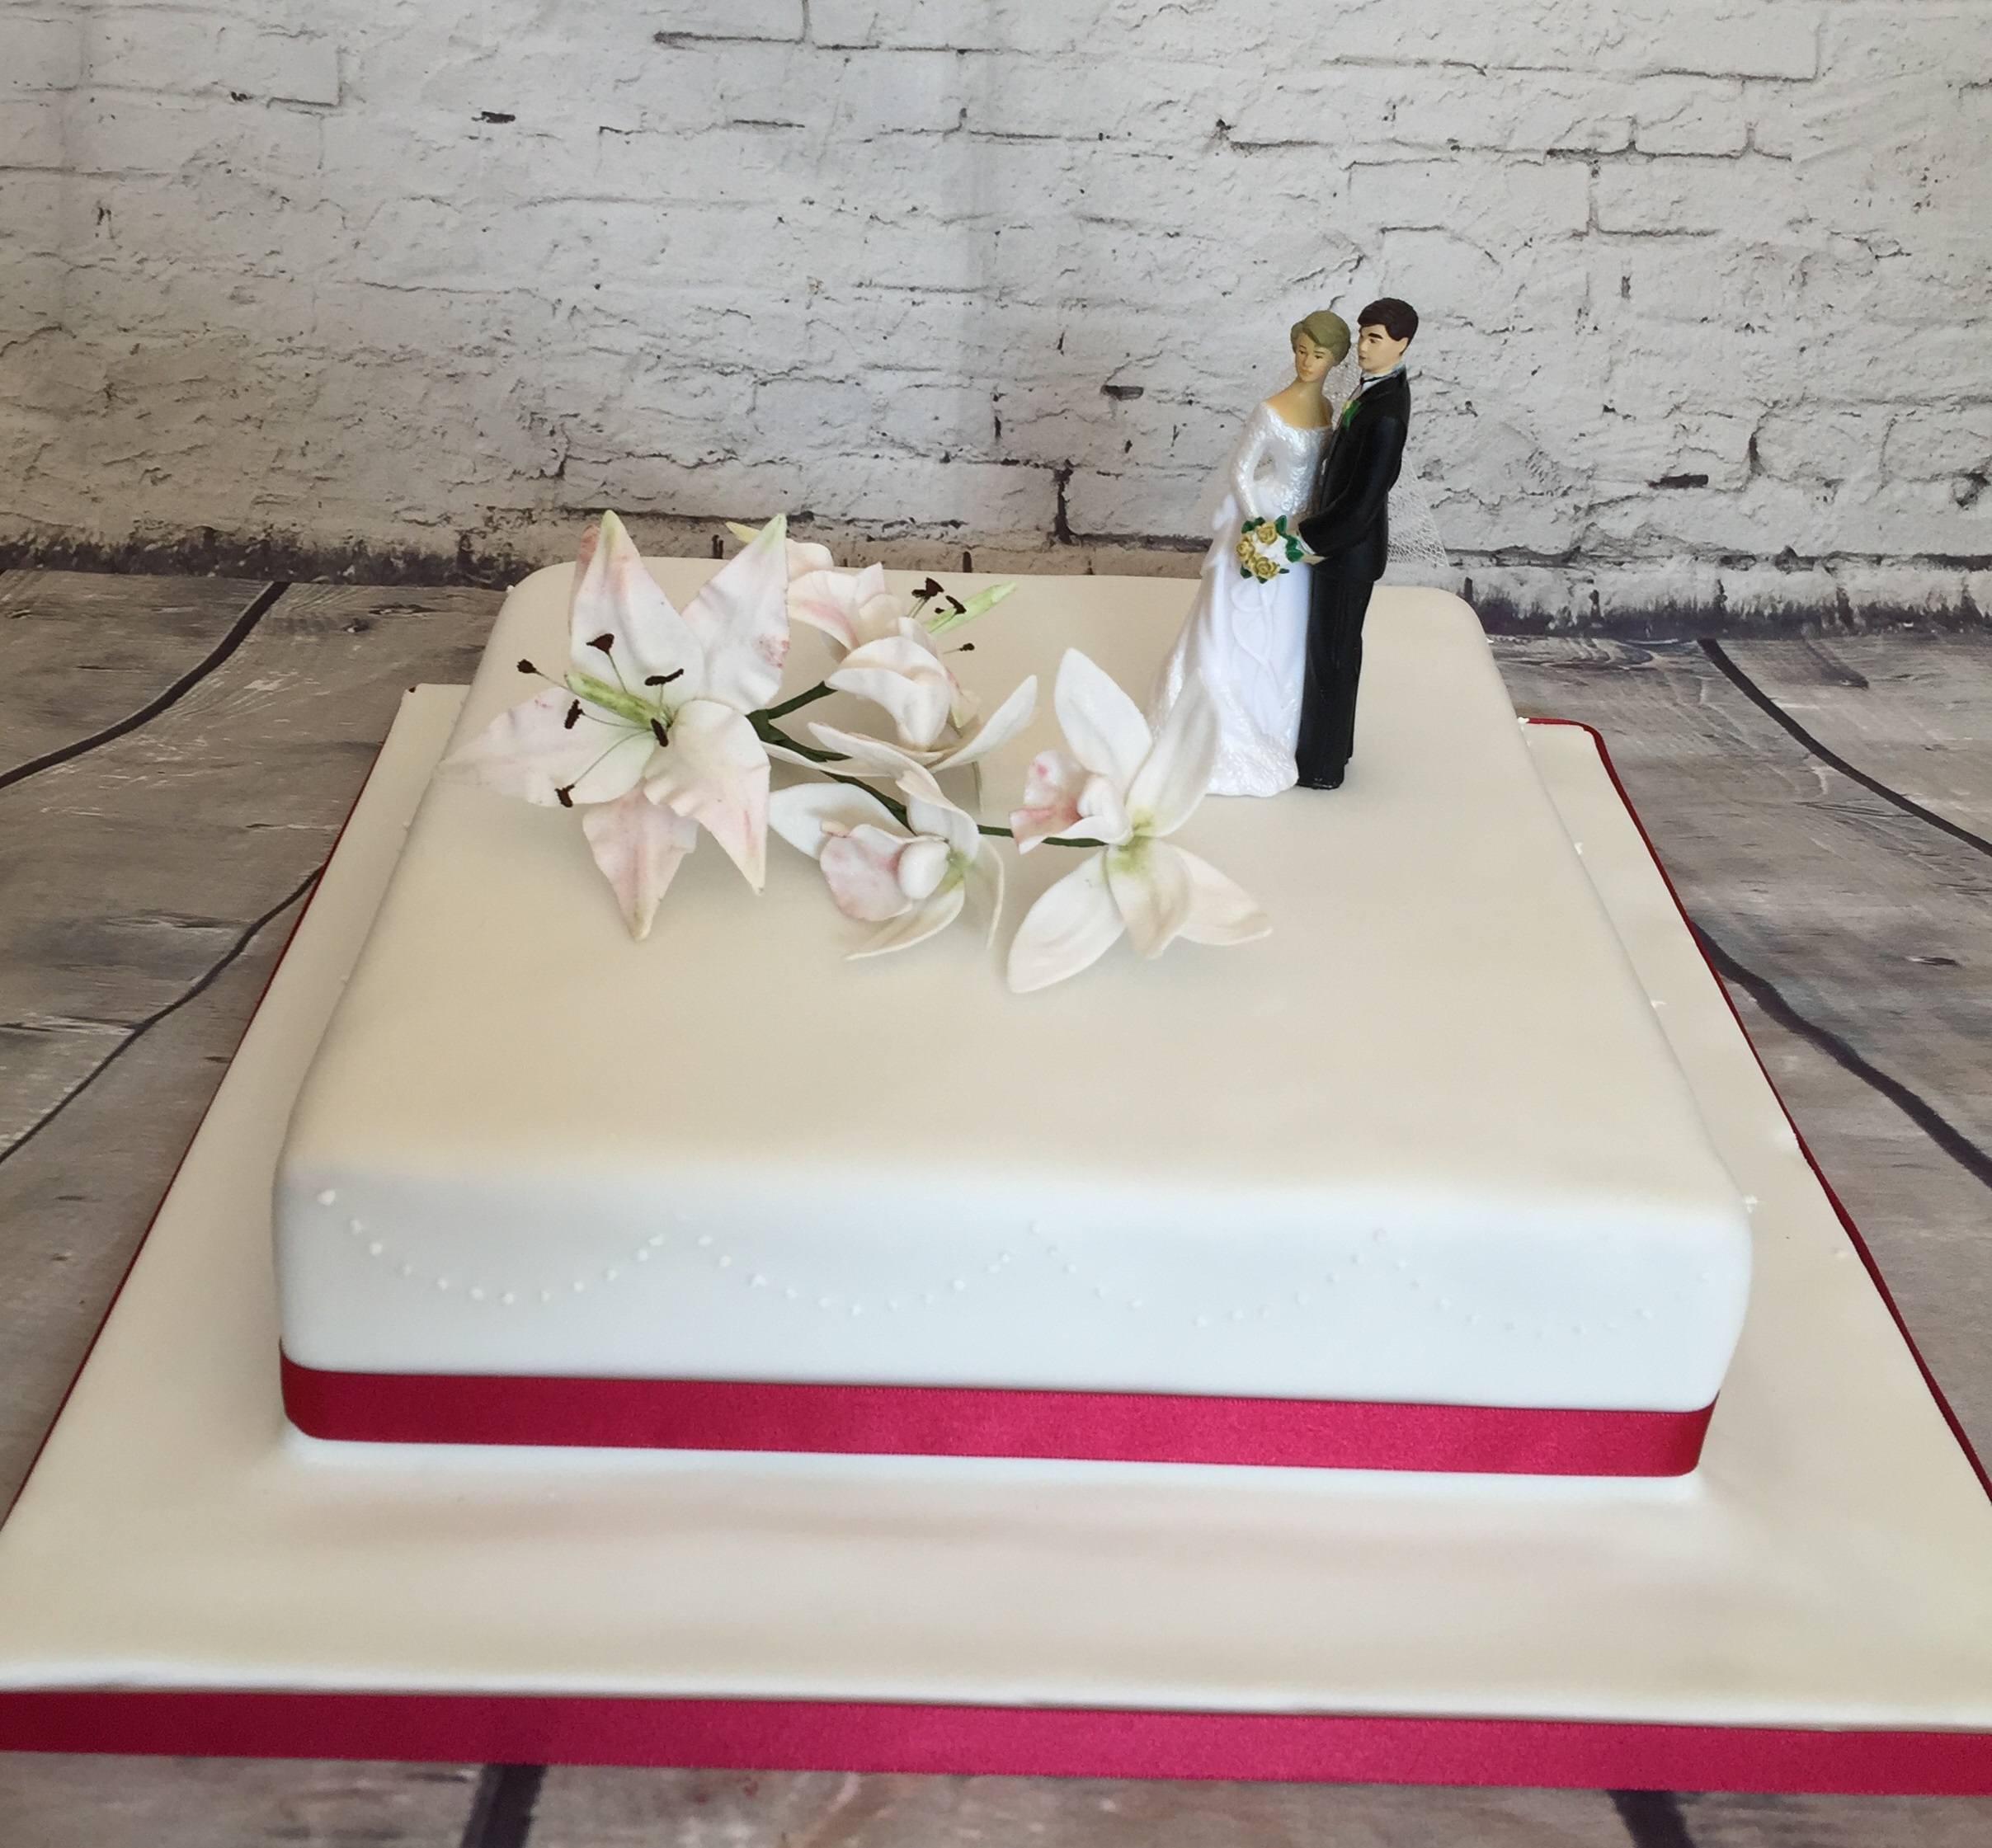 Luxury Pictures Of Square Wedding Cakes Frieze - The Wedding Ideas ...